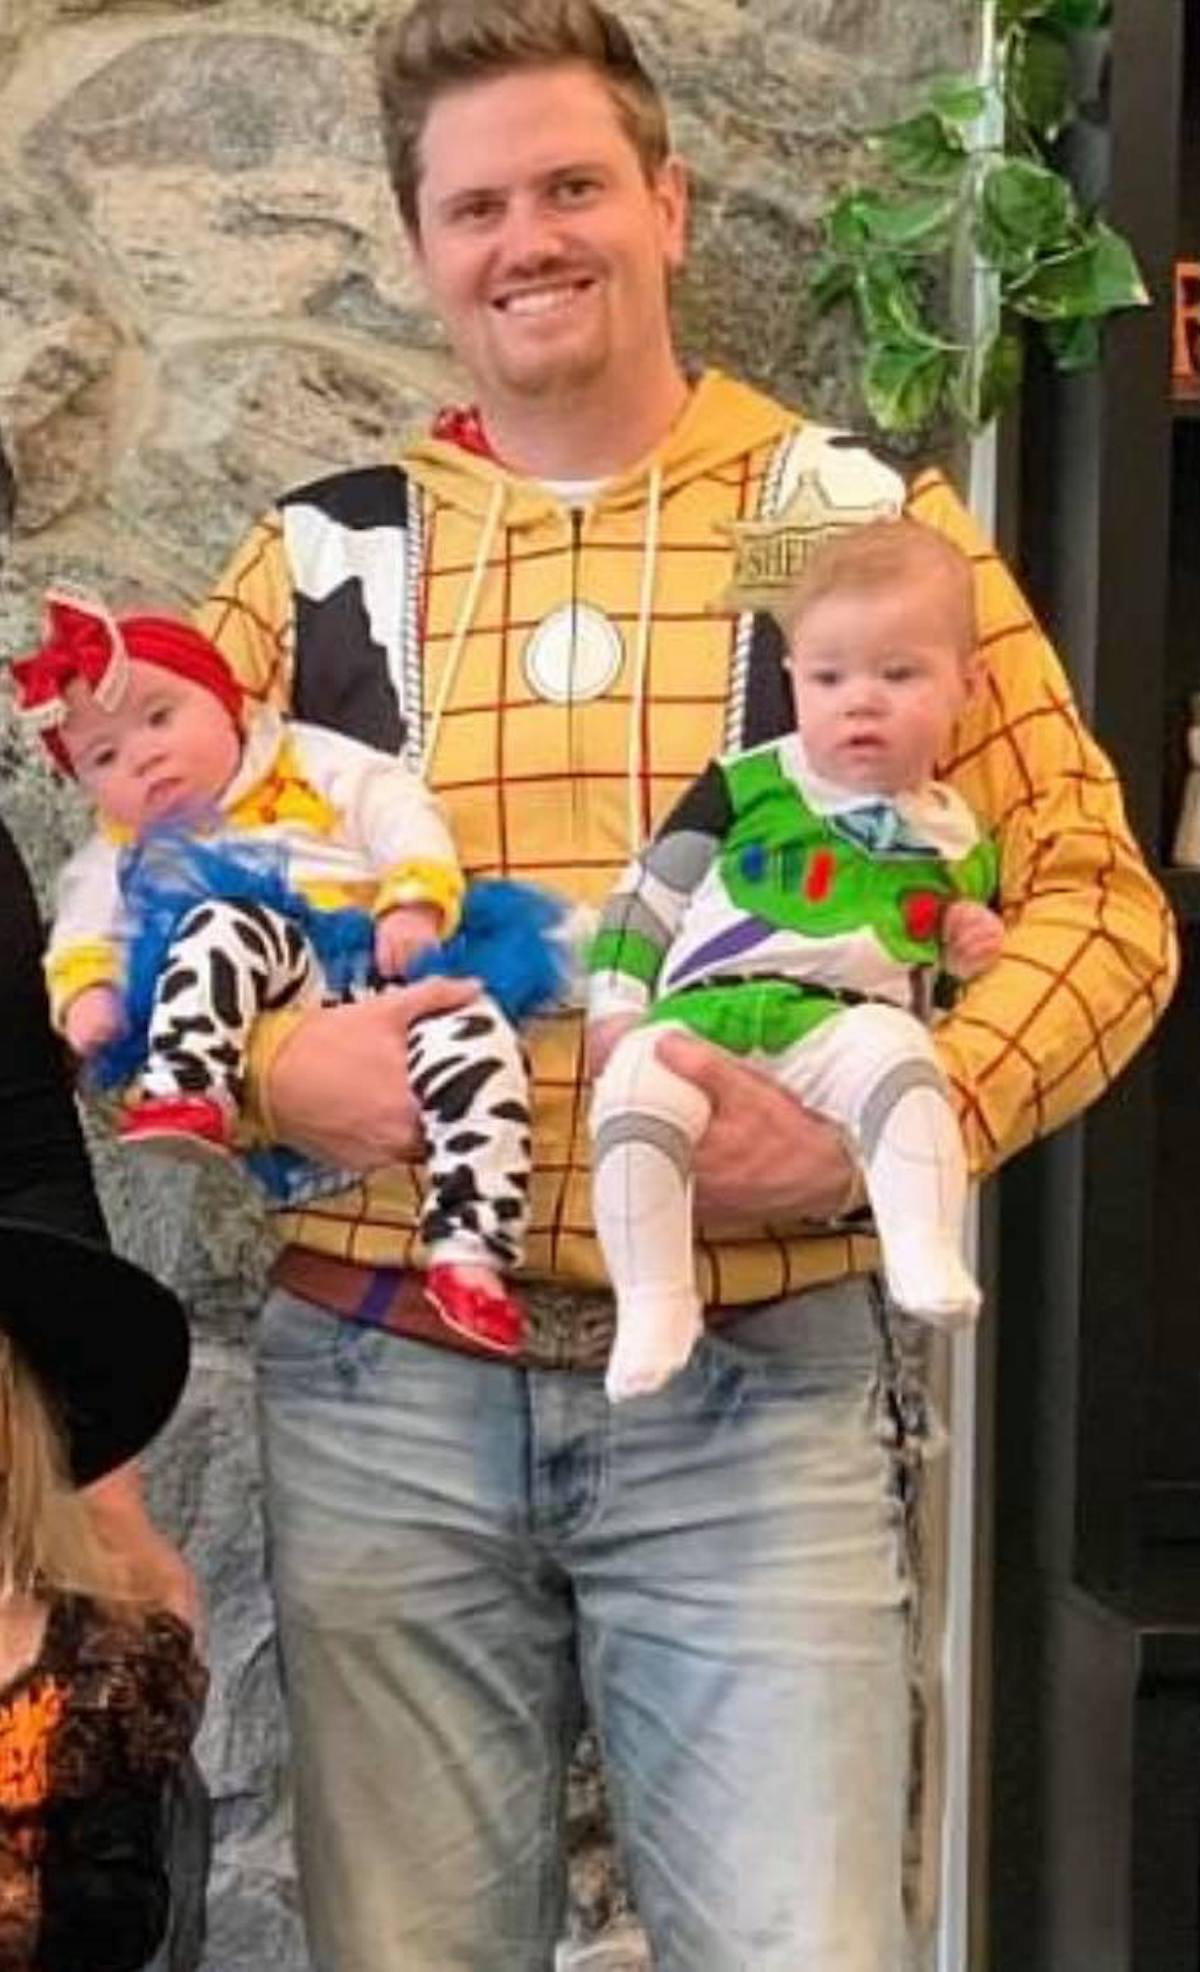 Man dressed as Woody holds babies dressed as Jessie and Buzz Lightyear.